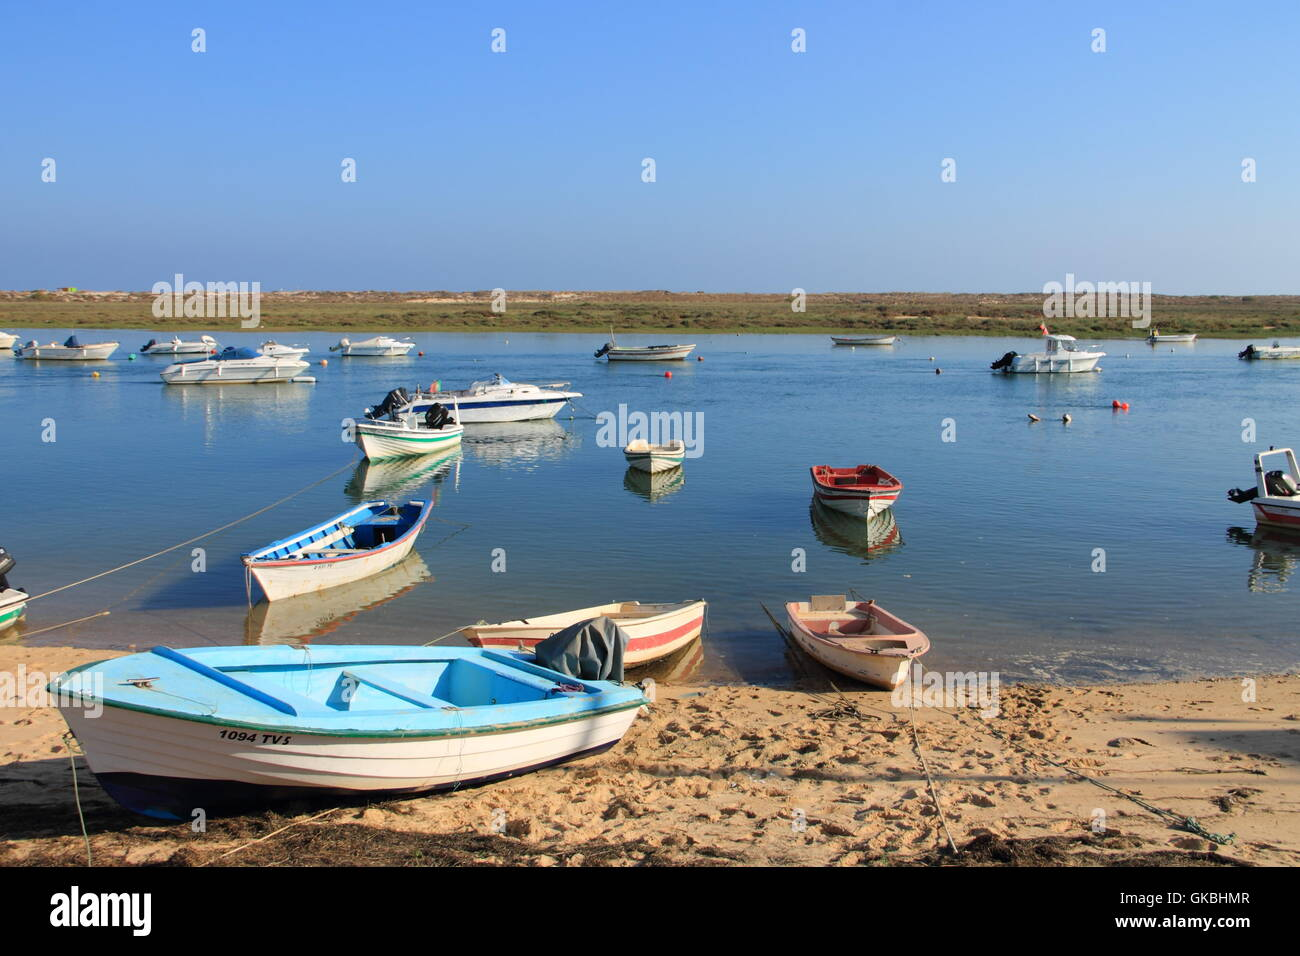 aground picturesque boats - Stock Image